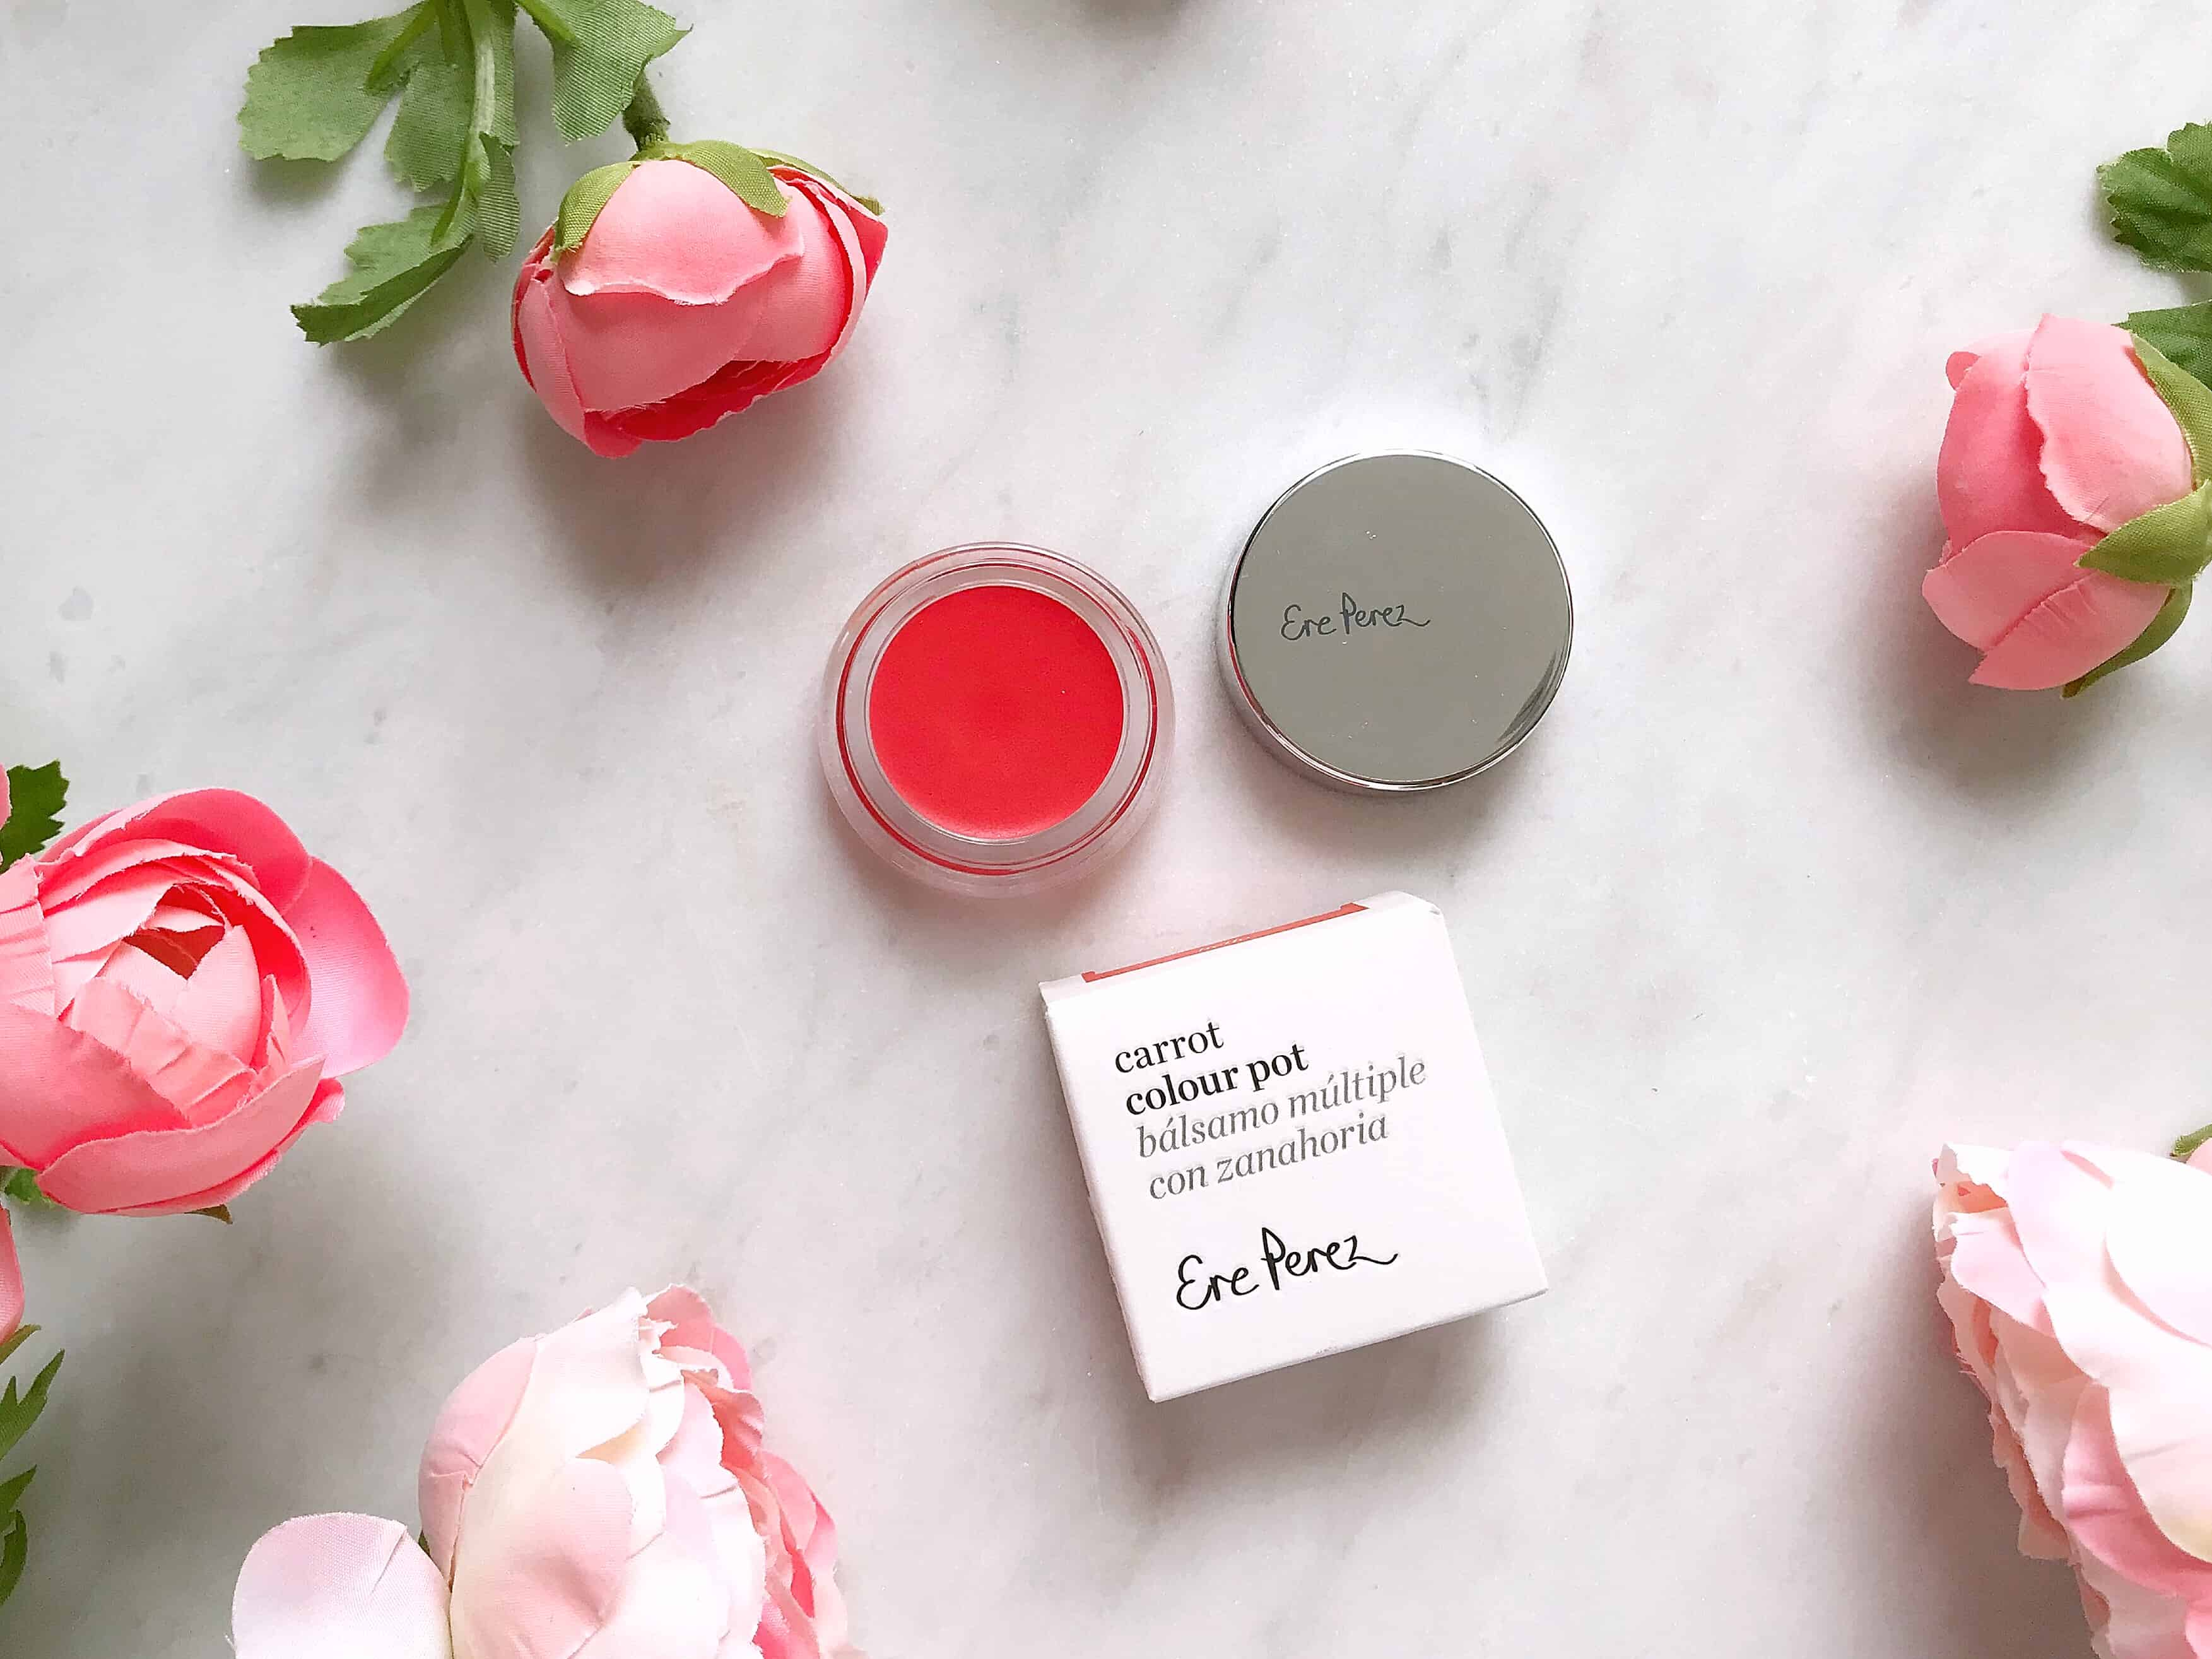 Ere Perez Natural Cosmetics Carrot Colour Pot in Hello review